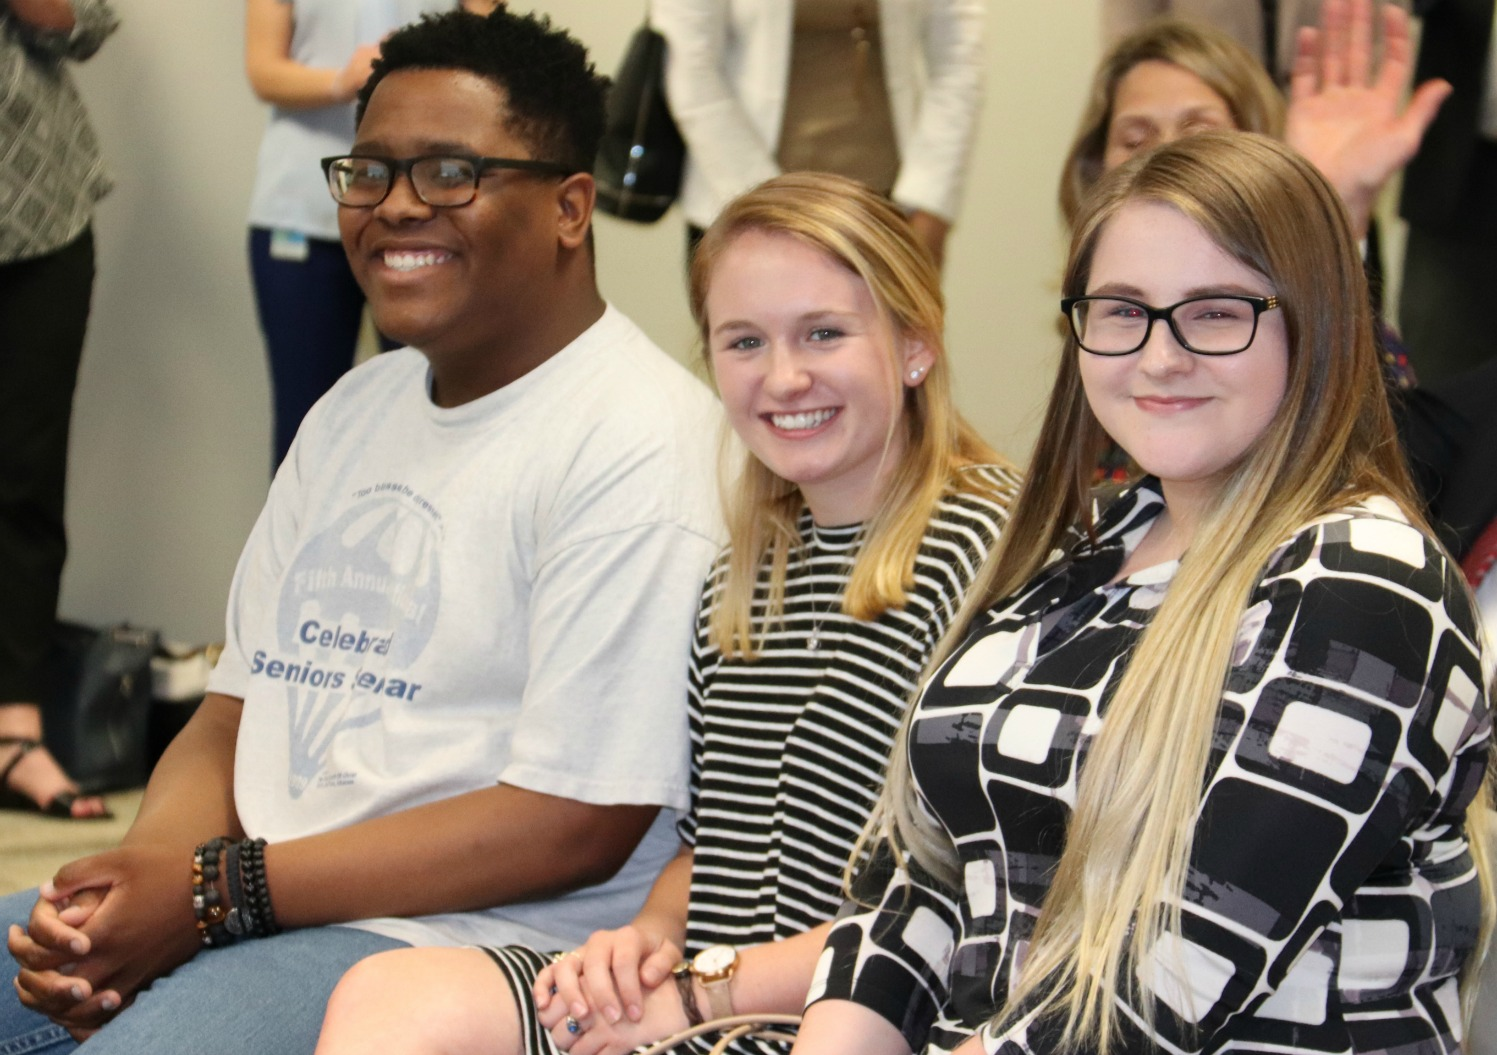 Students speaking during the signing ceremony included Isaiah McDaniel, Cassidy Robinson and Rylie Anderson.